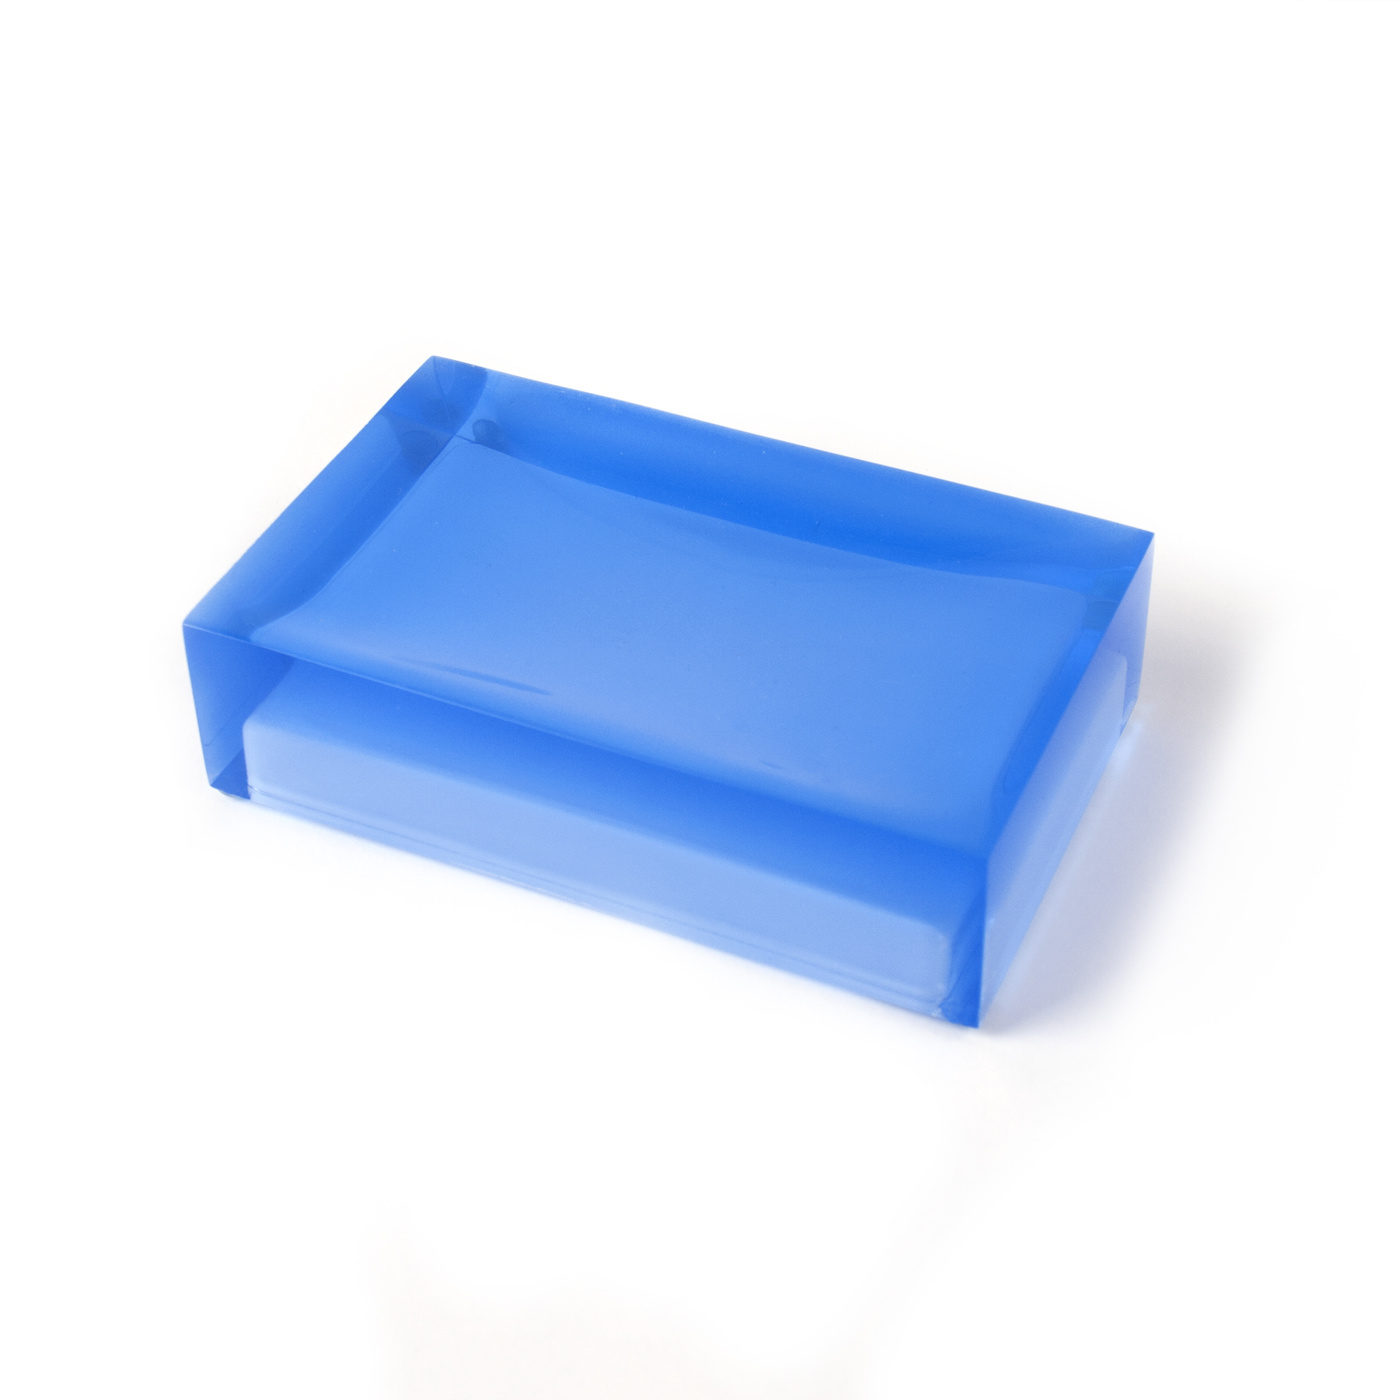 Jonathan Adler Hollywood Soap Dish Blue